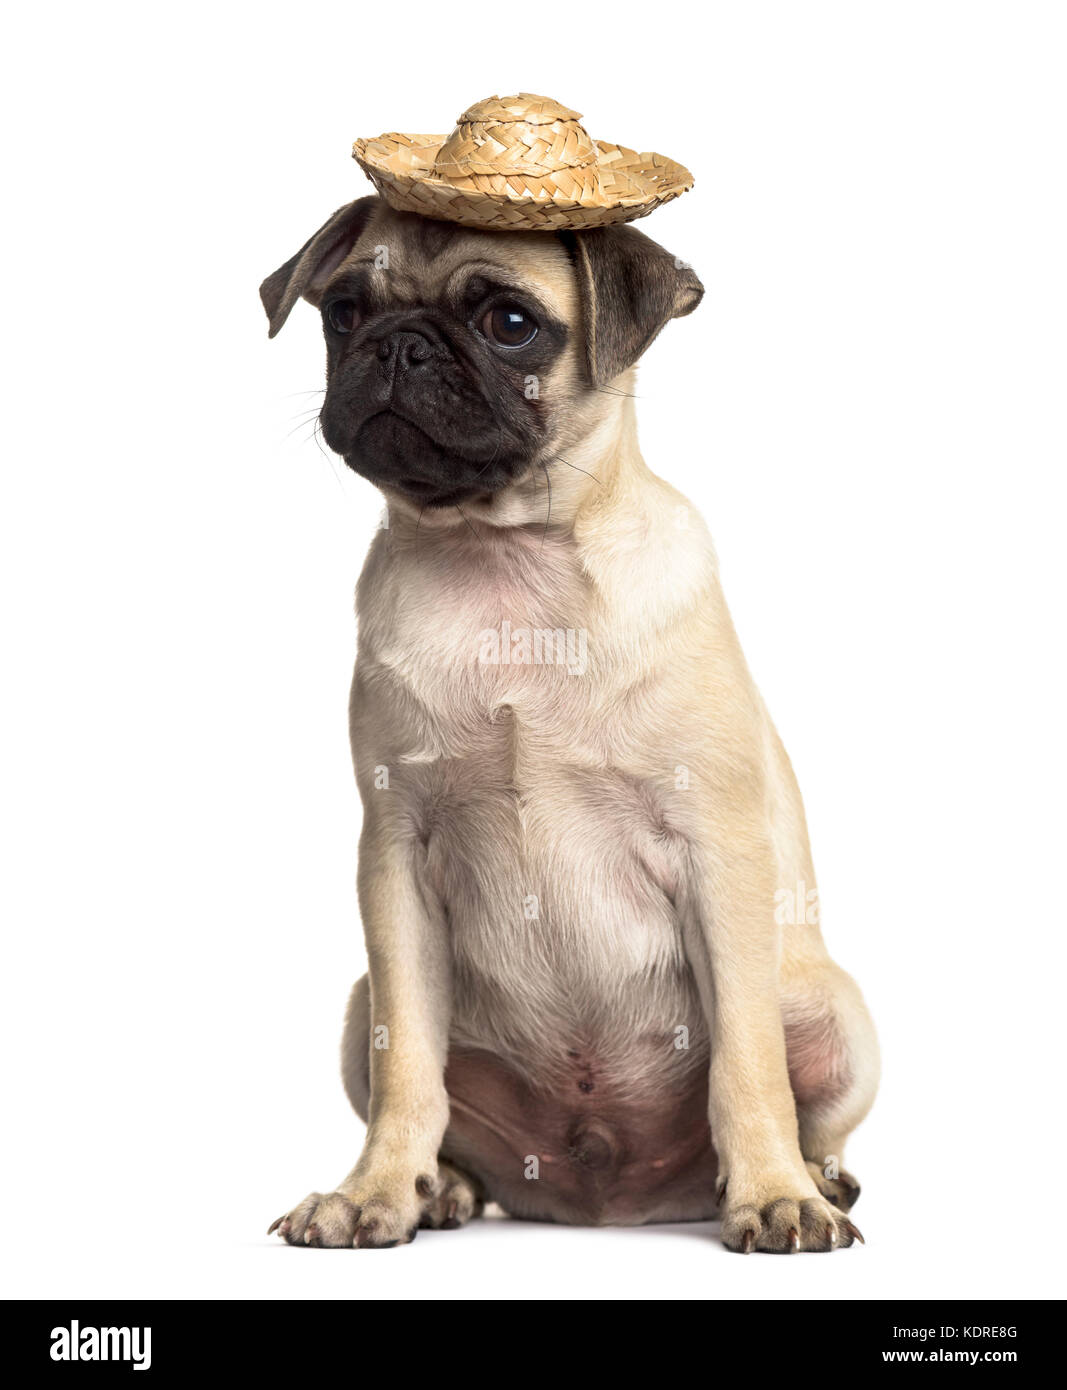 Pug sitting with a hat, isolated on white - Stock Image